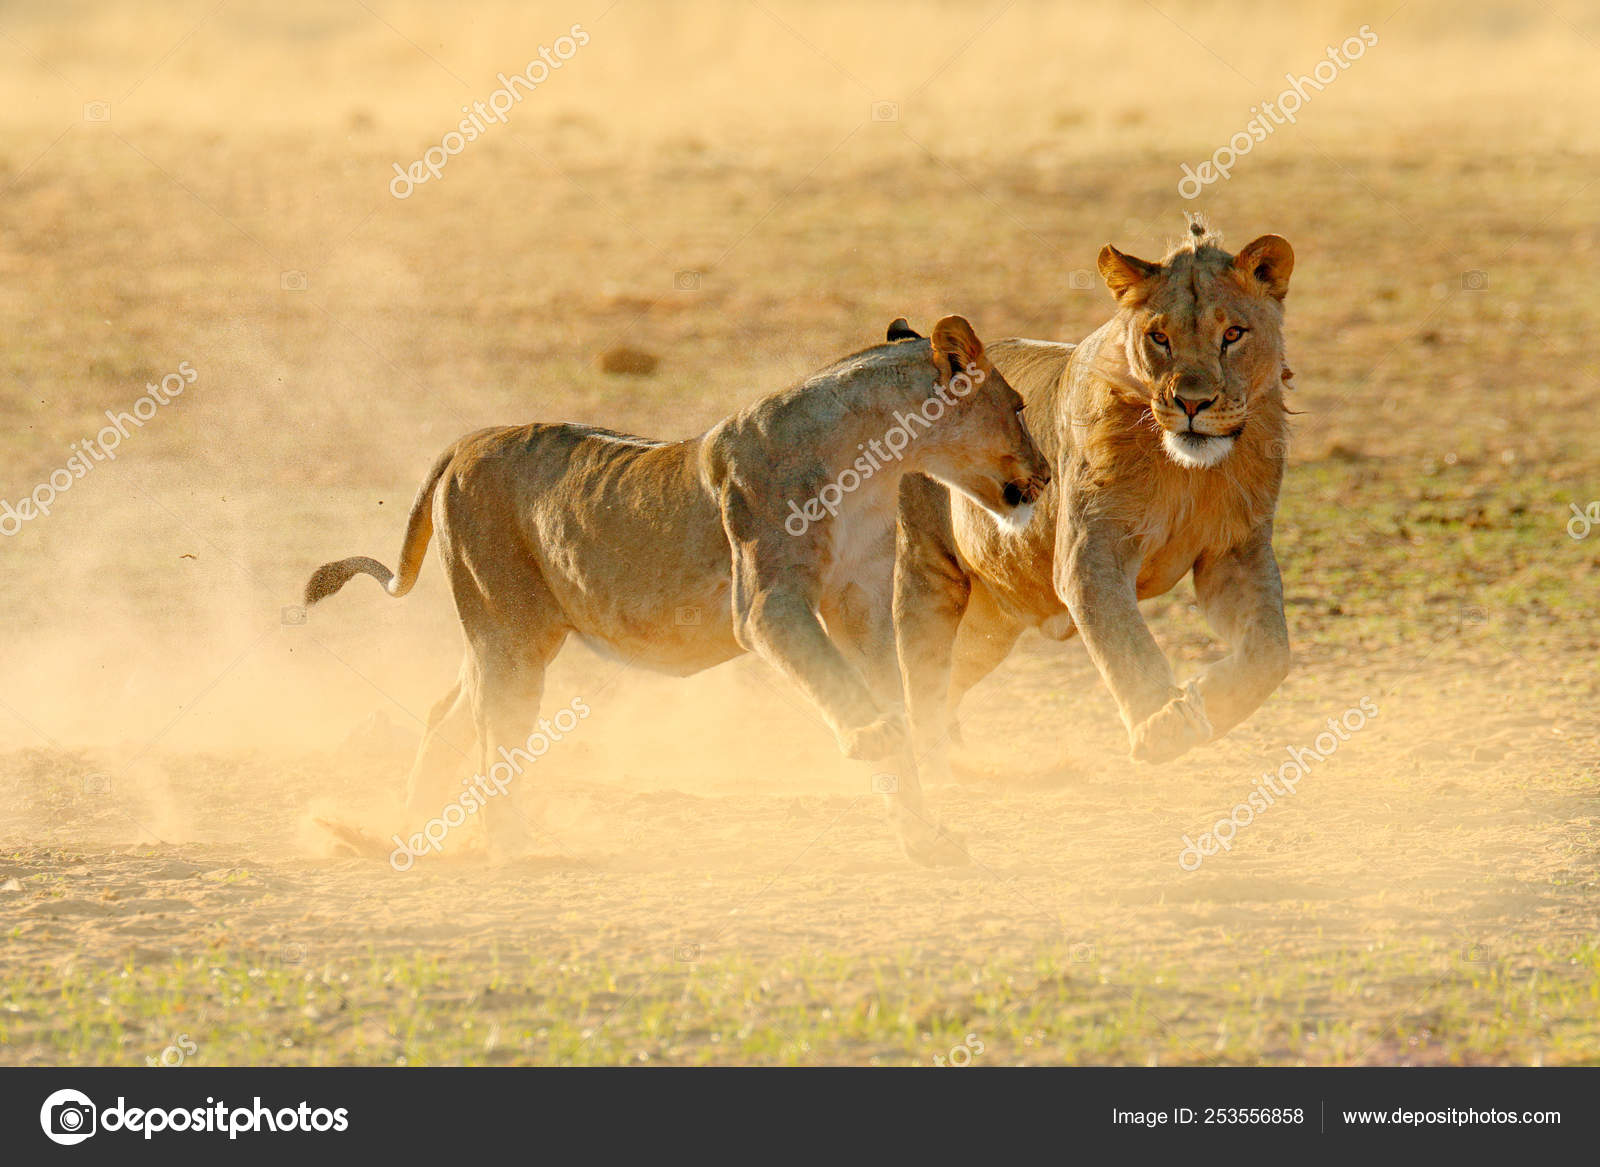 Lions Fight Sand Lion Open Muzzle Pair African Lions Panthera